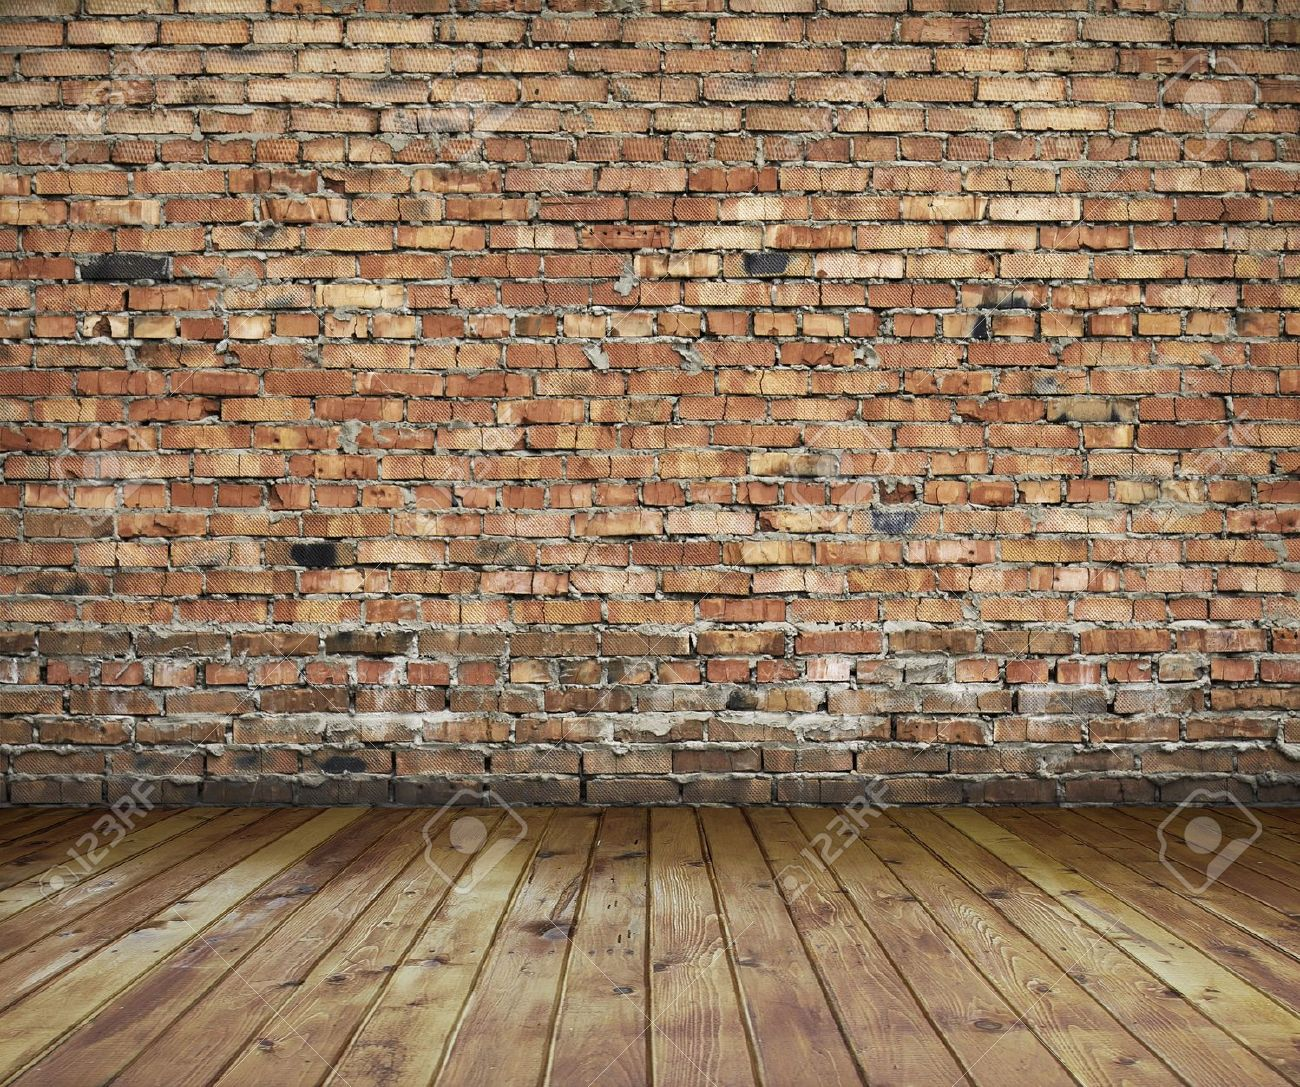 old interior with brick wall vintage background Stock Photo - 13785452 & Old Interior With Brick Wall Vintage Background Stock Photo ...